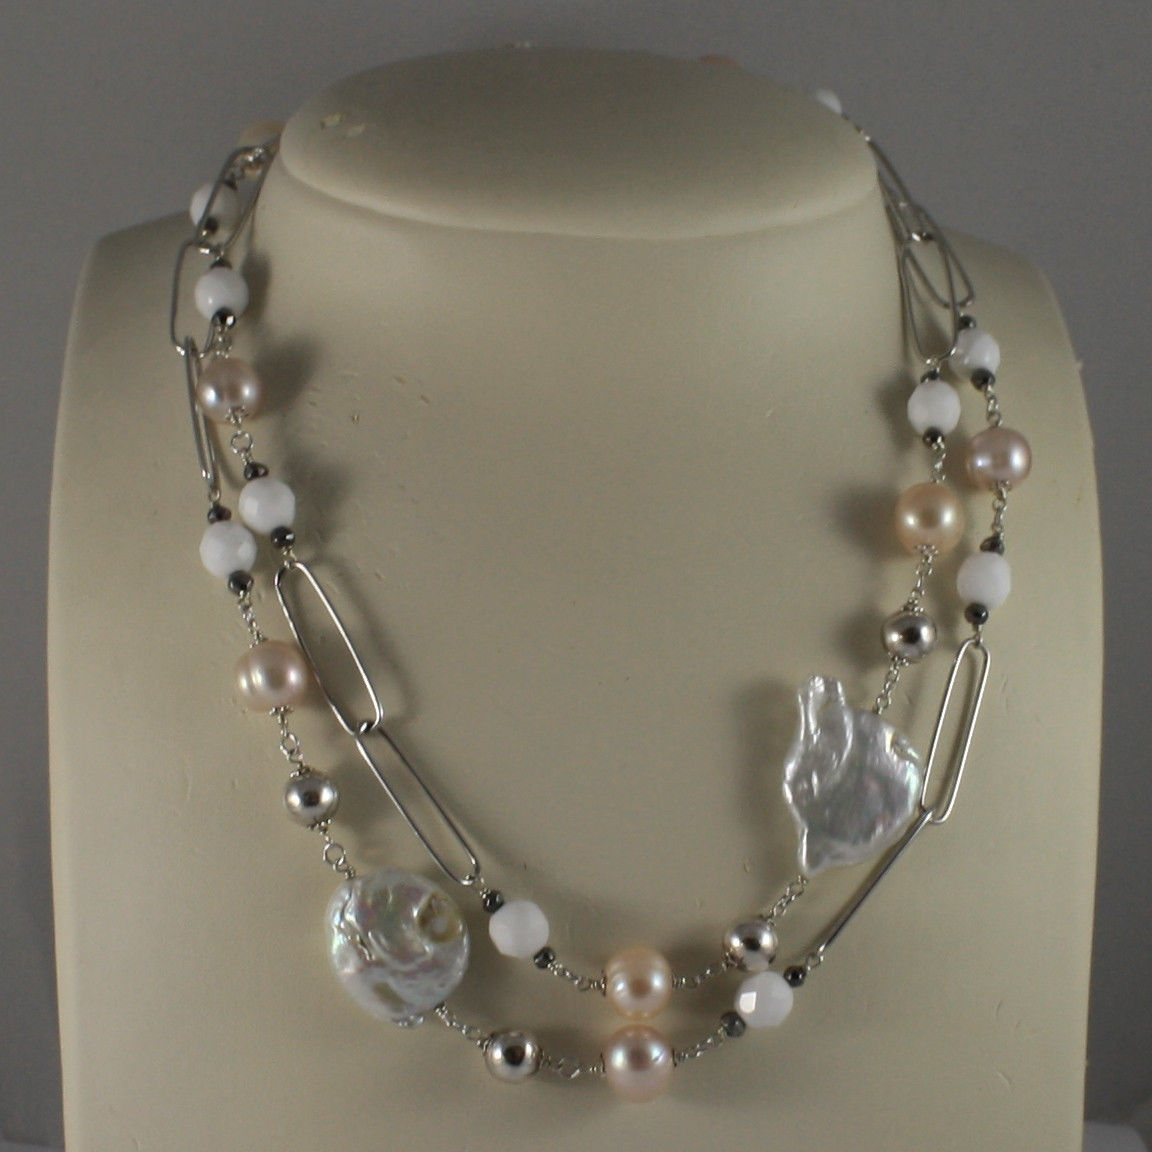 .925 SILVER RHODIUM NECKLACE WITH PINK PEARLS, WHITE AGATE, BAROQUE WHITE PEARLS